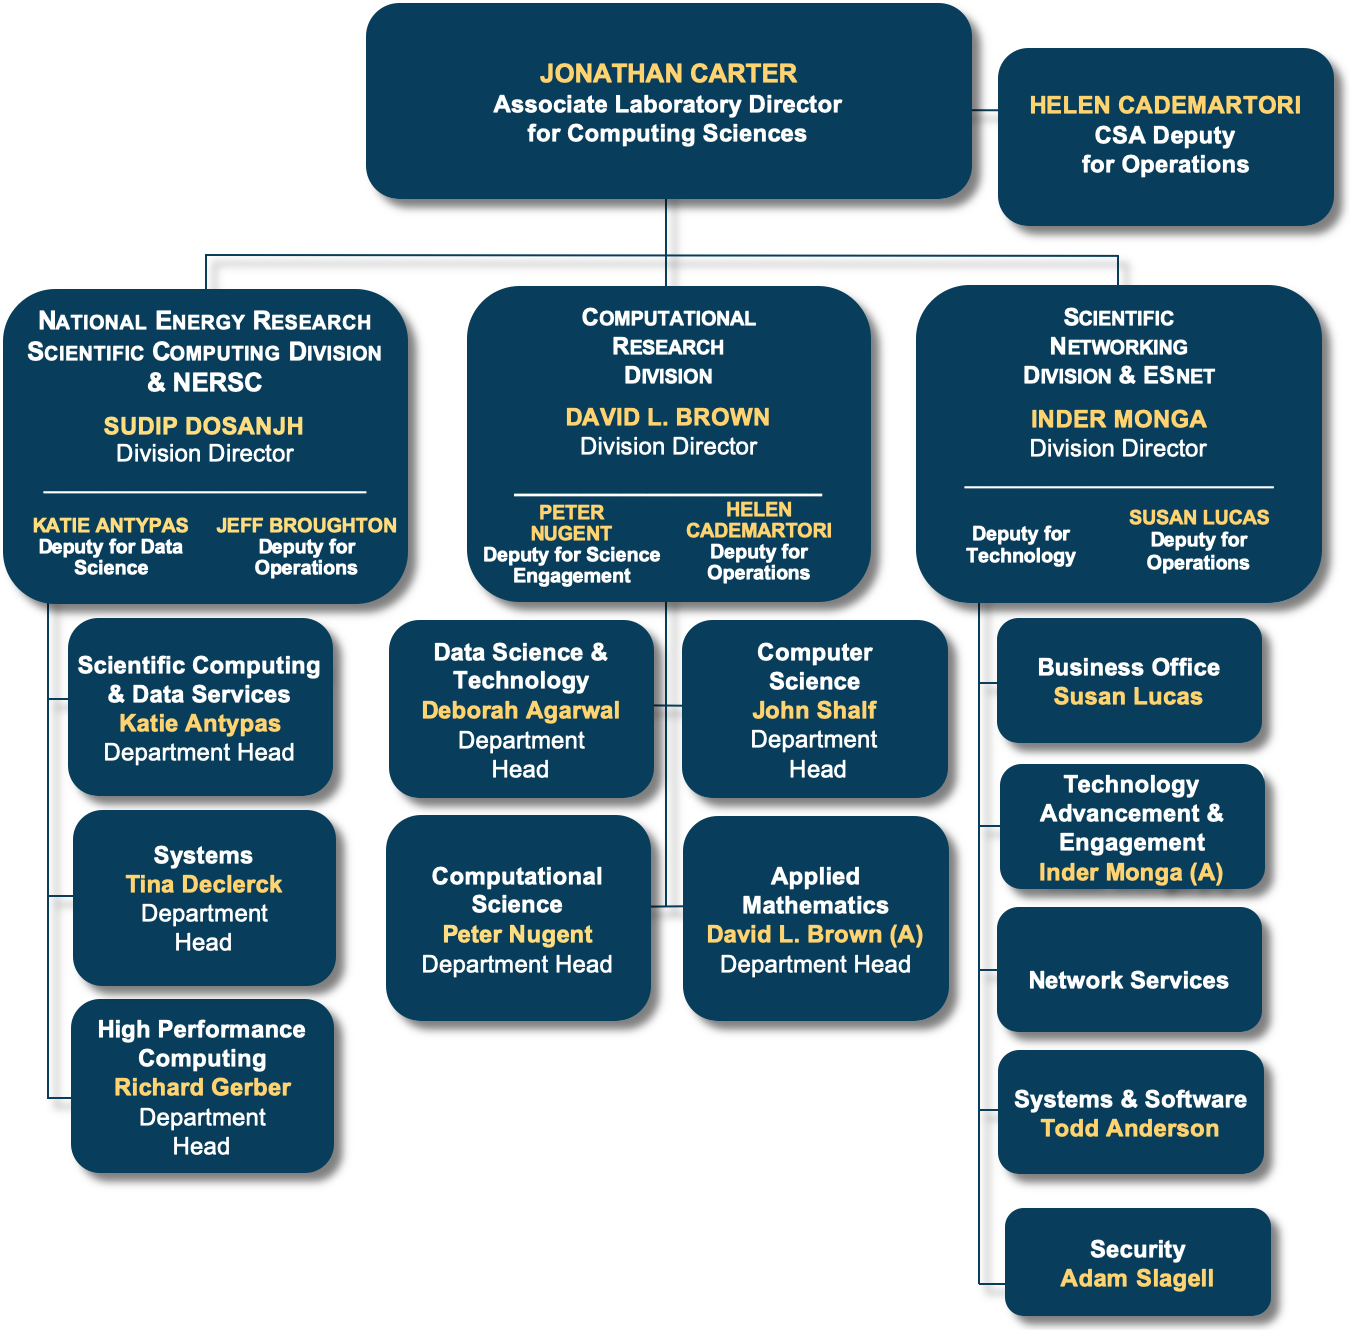 CS Org Chart last updated May 5, 2020